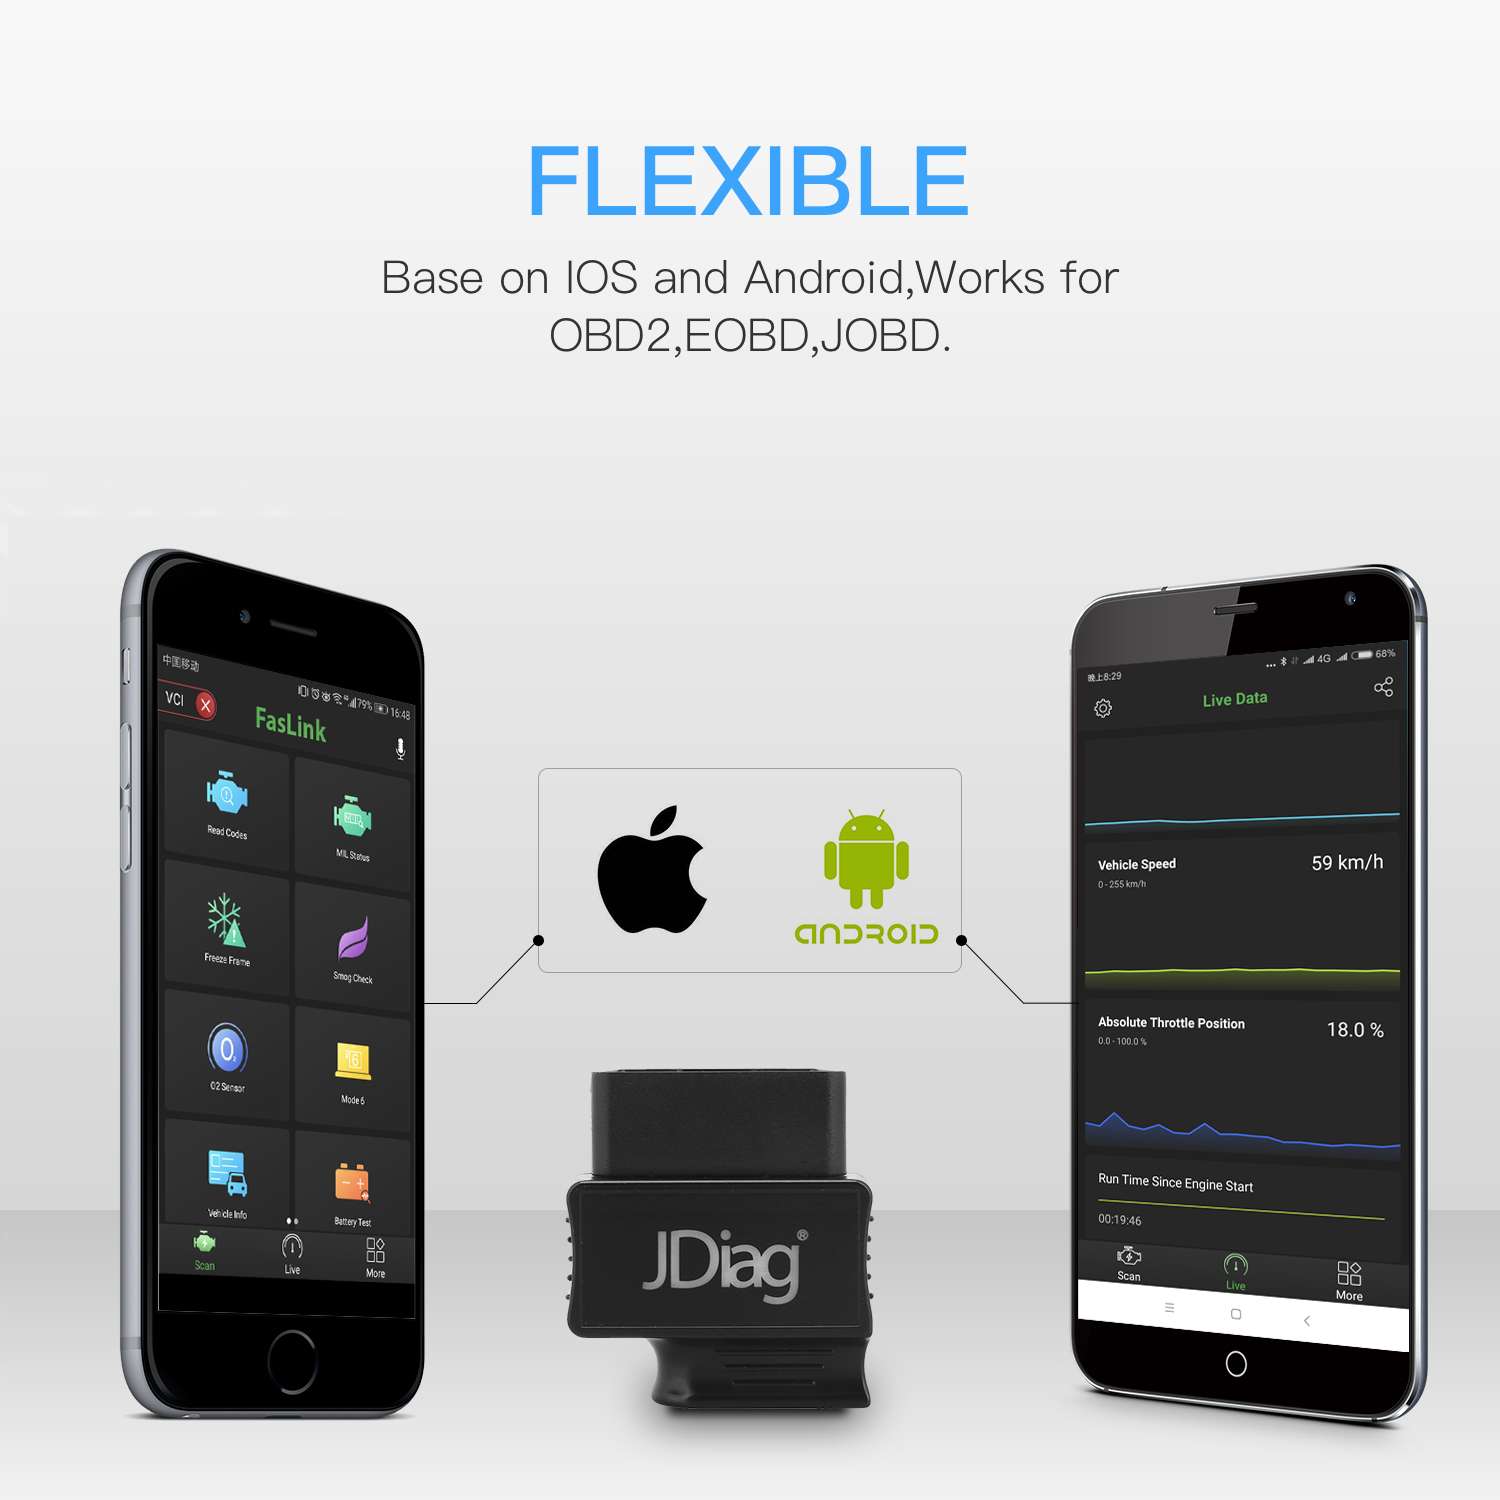 Faslink M2 Flexible Whats Difference Between FasLink M2 App & ELM327 TURQUE